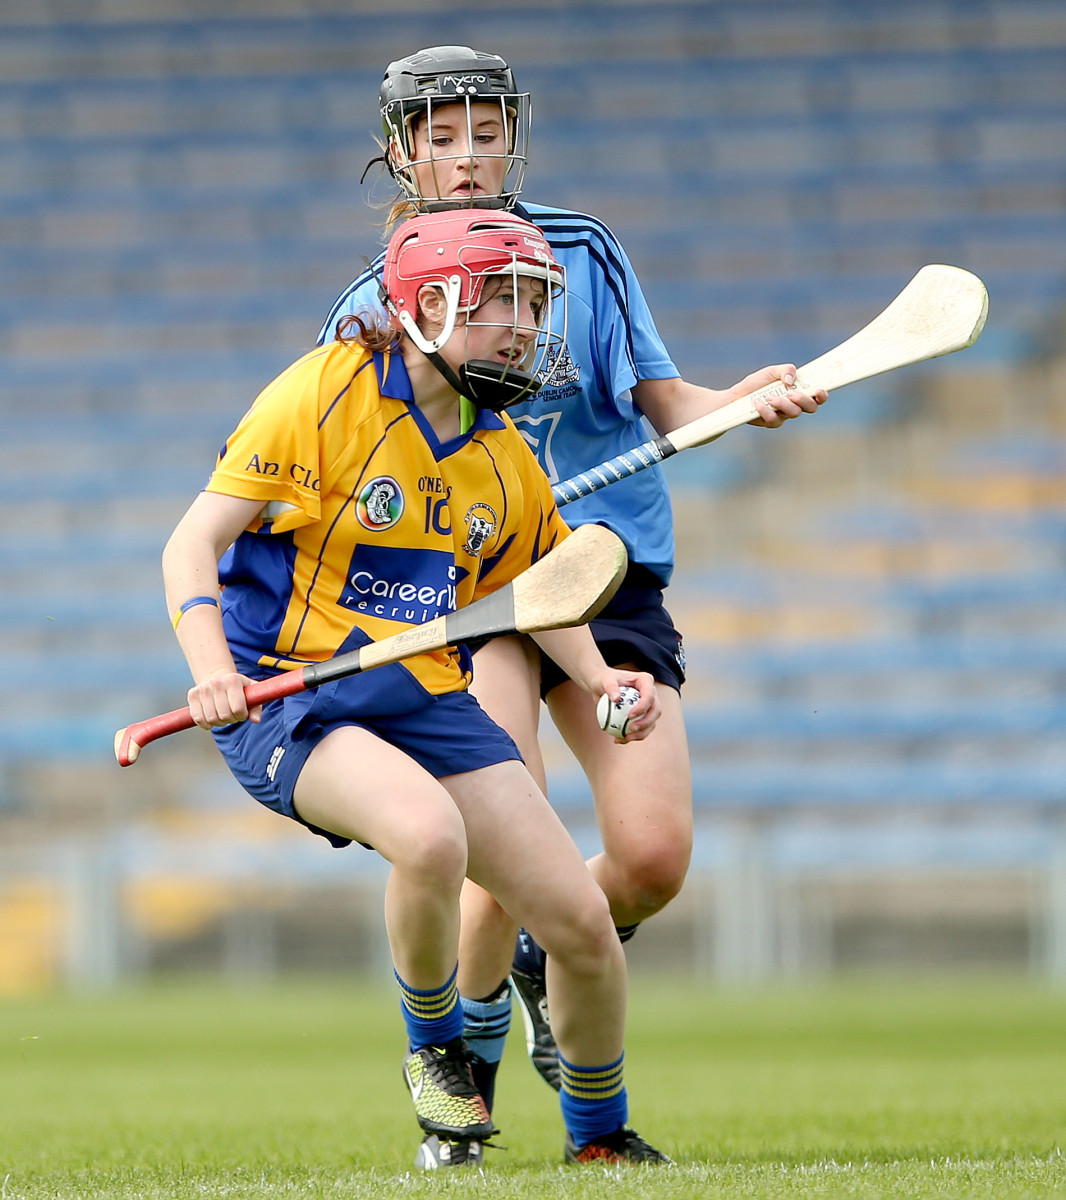 Clare's Andrea O'Keeffe will be a key player for Inagh/Kilnamona. Picture Credit ©INPHO/James Crombie